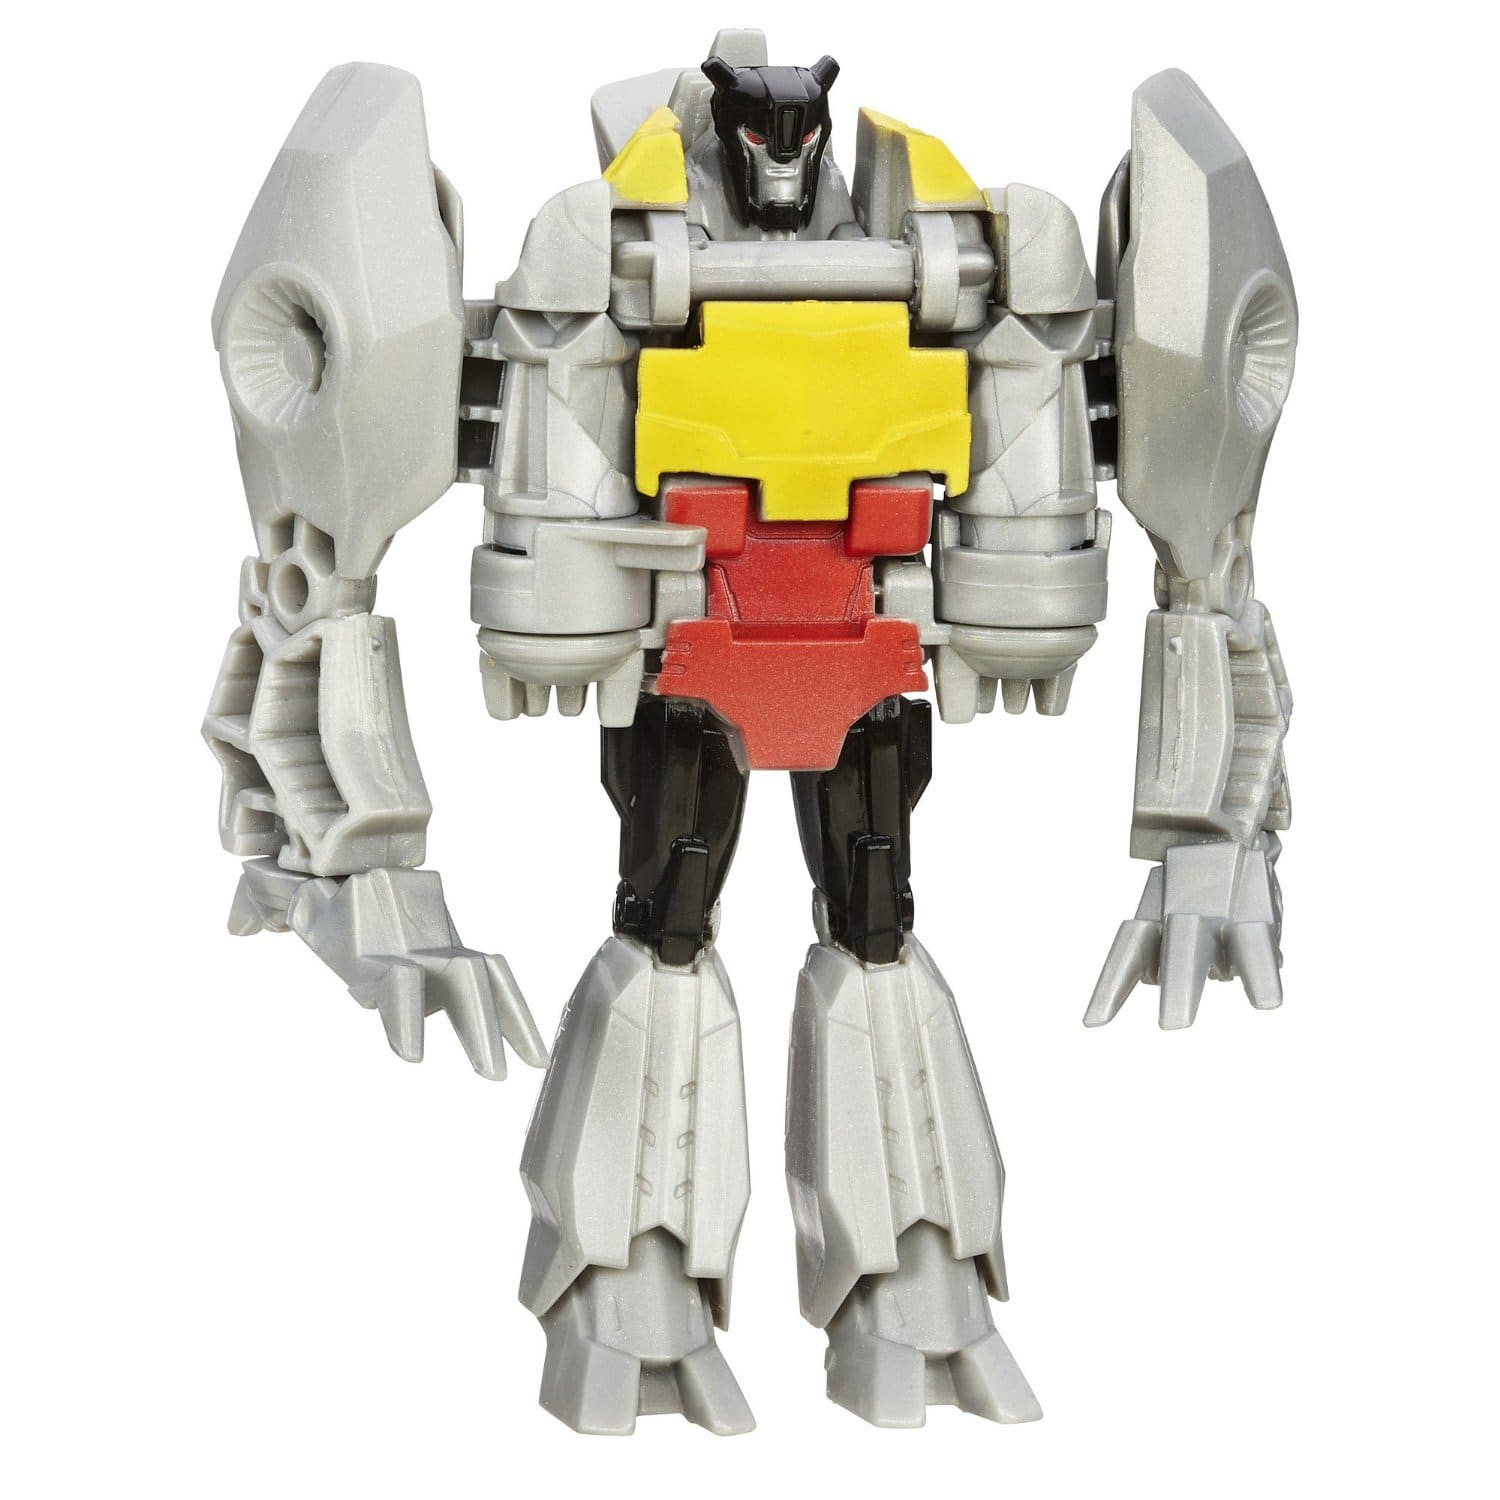 Transformers 1-Step Changers Gold Armor Grimlock Figure $3.78 (Prime Shipping Eligible) @ Amazon.com